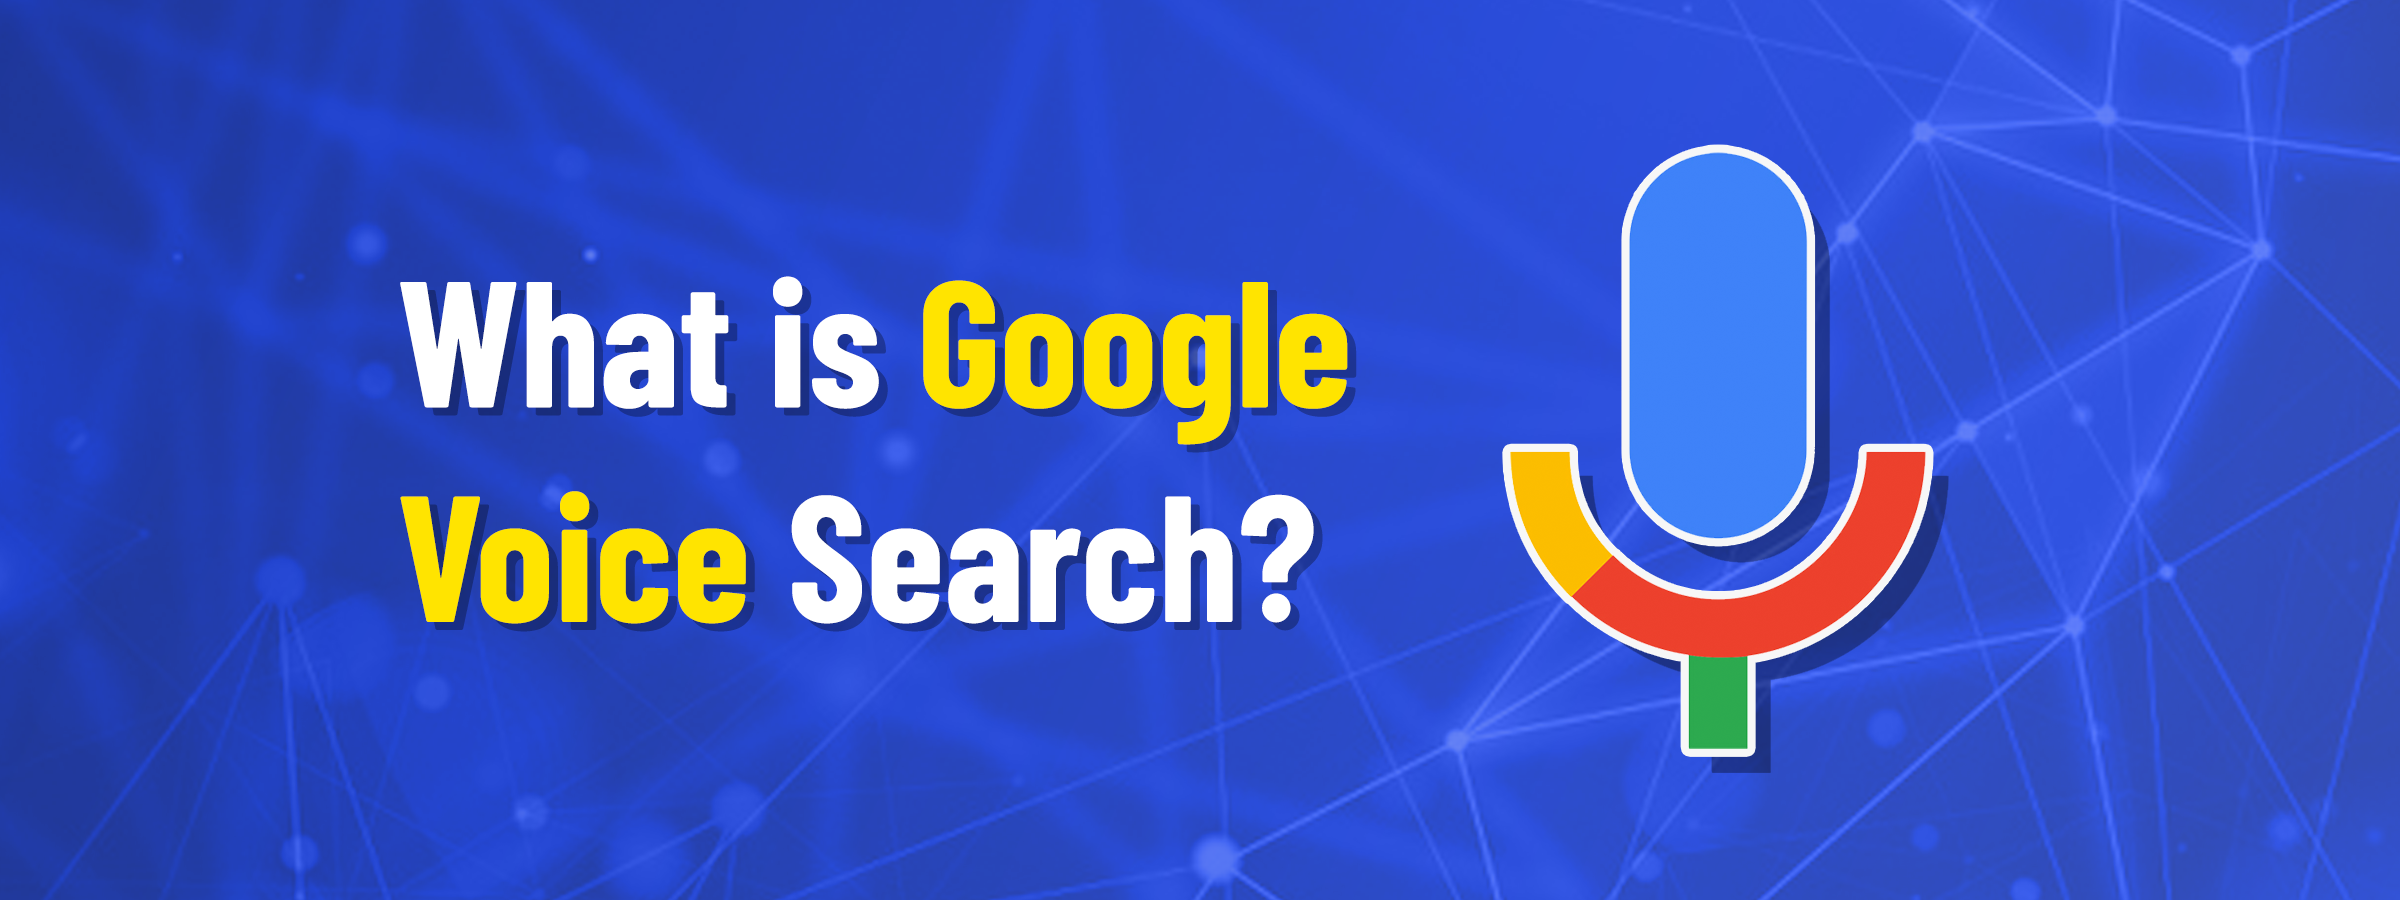 What is Google Voice Search?